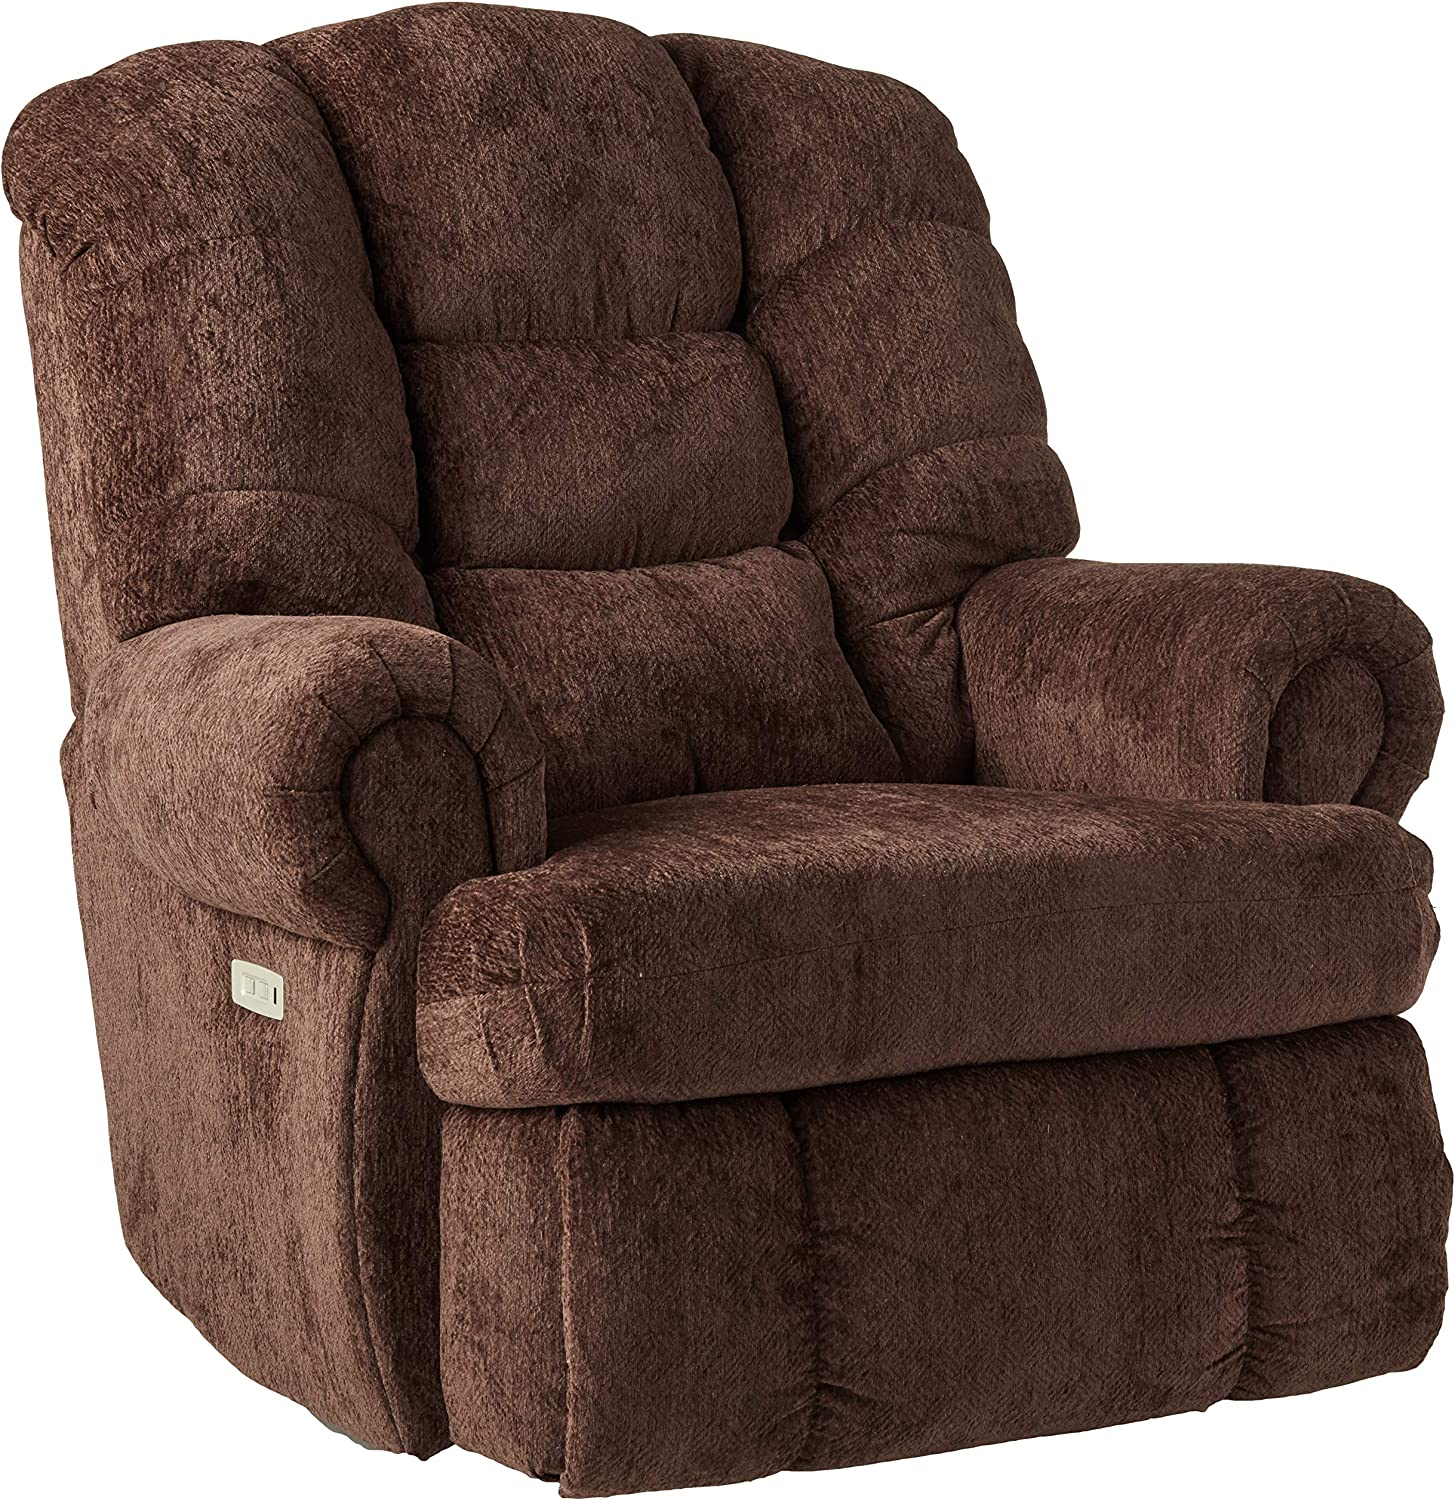 Lane Home Furnishings 4501P-19 Torino Wine Power Rocker Recliner Wine, Medium